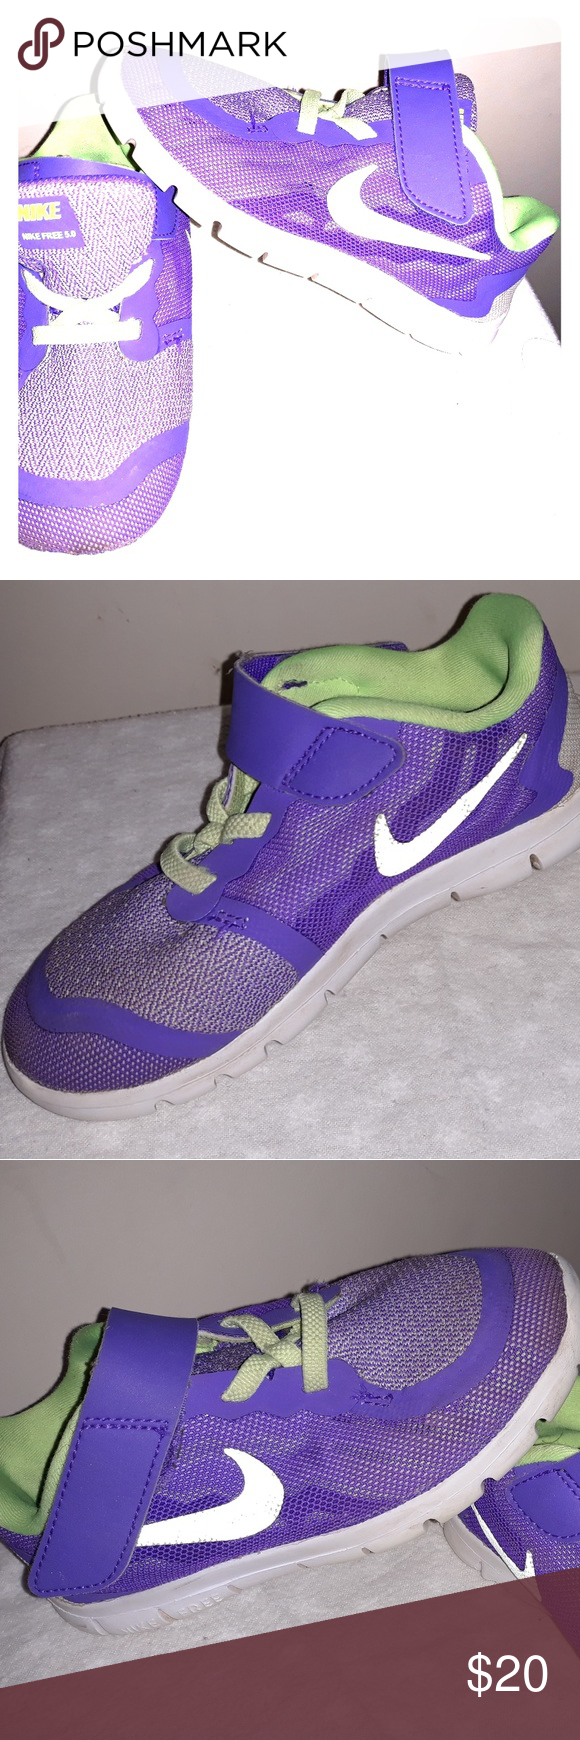 4dc6751caf7ec7 Kids Nike Gym Shoes Free 5.0 Nike Free 5.0 Purple with neon green swoosh.  Great condition. Soft flexible material. Very comfortable. Nike Shoes  Sneakers